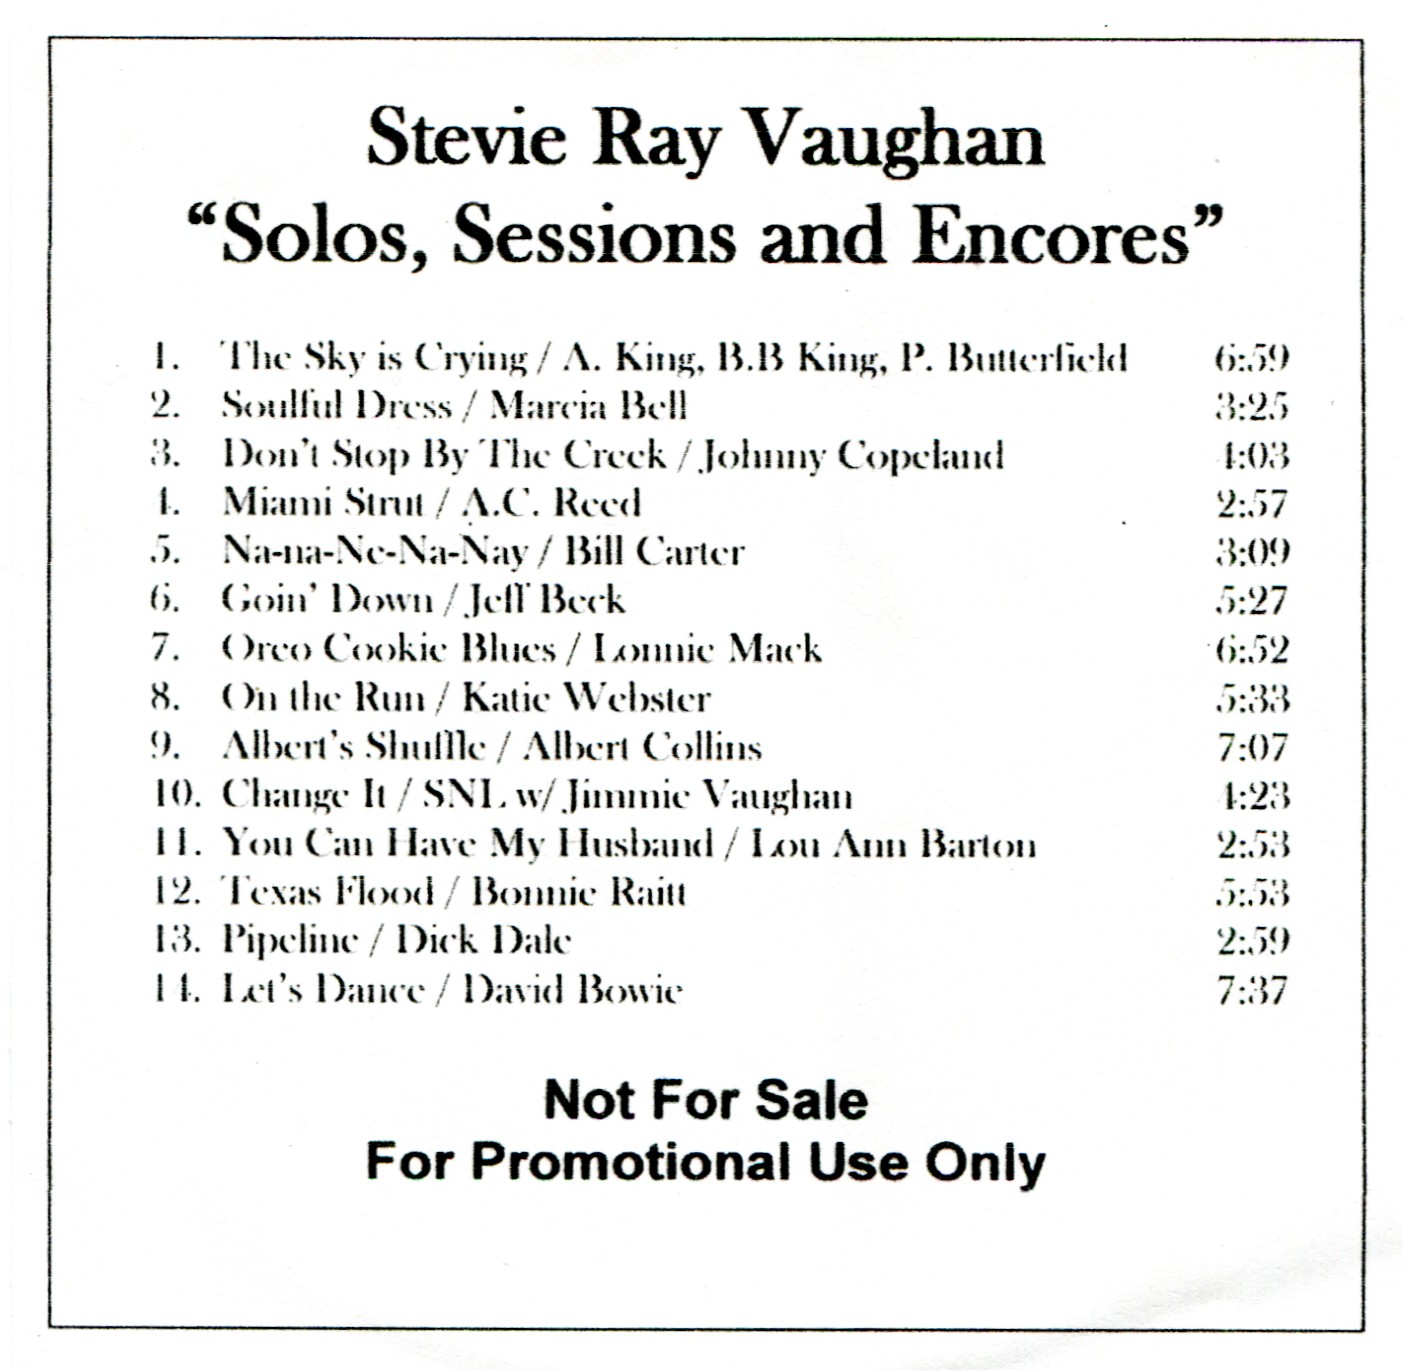 Stevie Ray Vaughan - Solos, Sessions and Encores US Promo